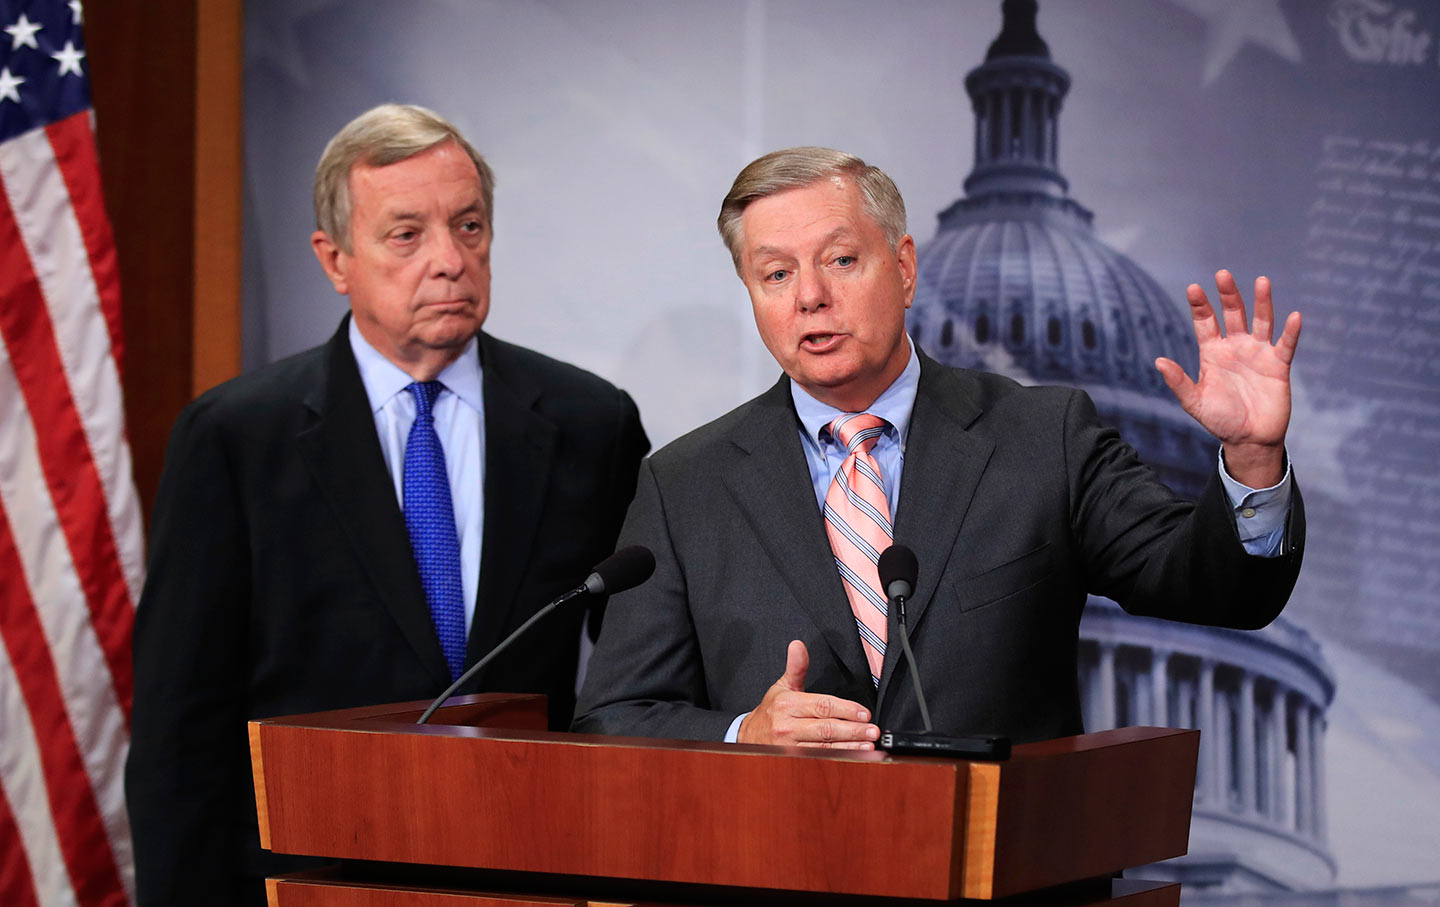 Senators Lindsey Graham and Dick Durbin